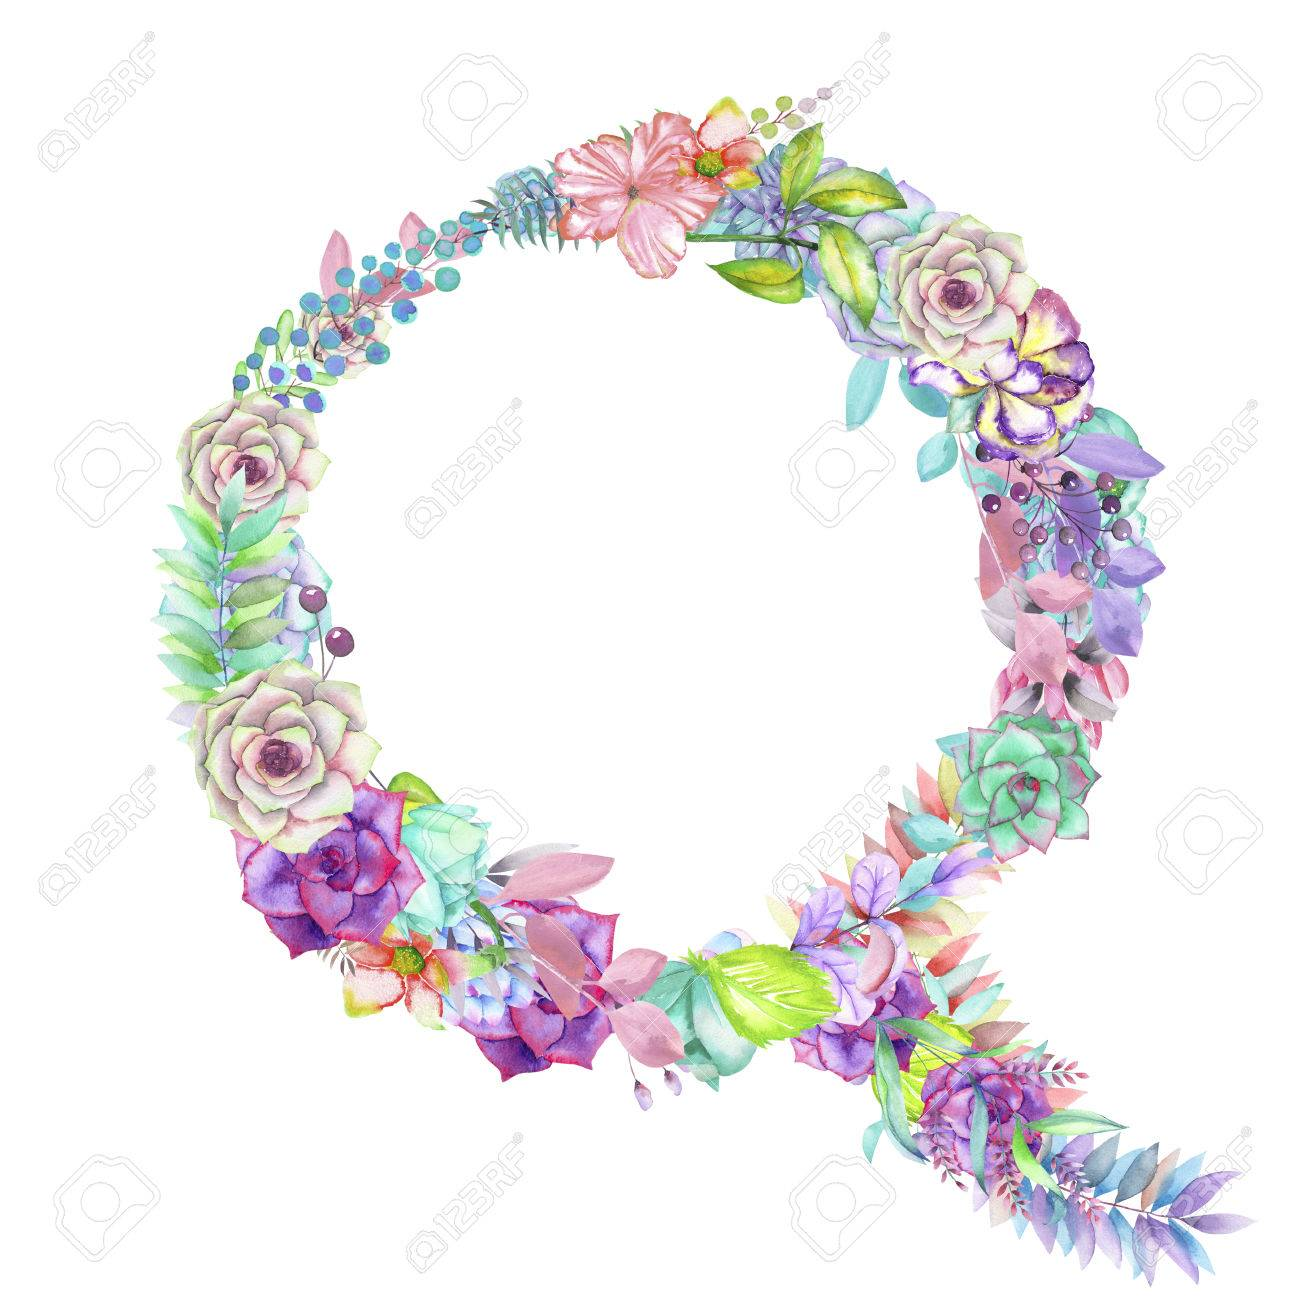 Capital Letter Q Of Watercolor Flowers Isolated Hand Drawn On